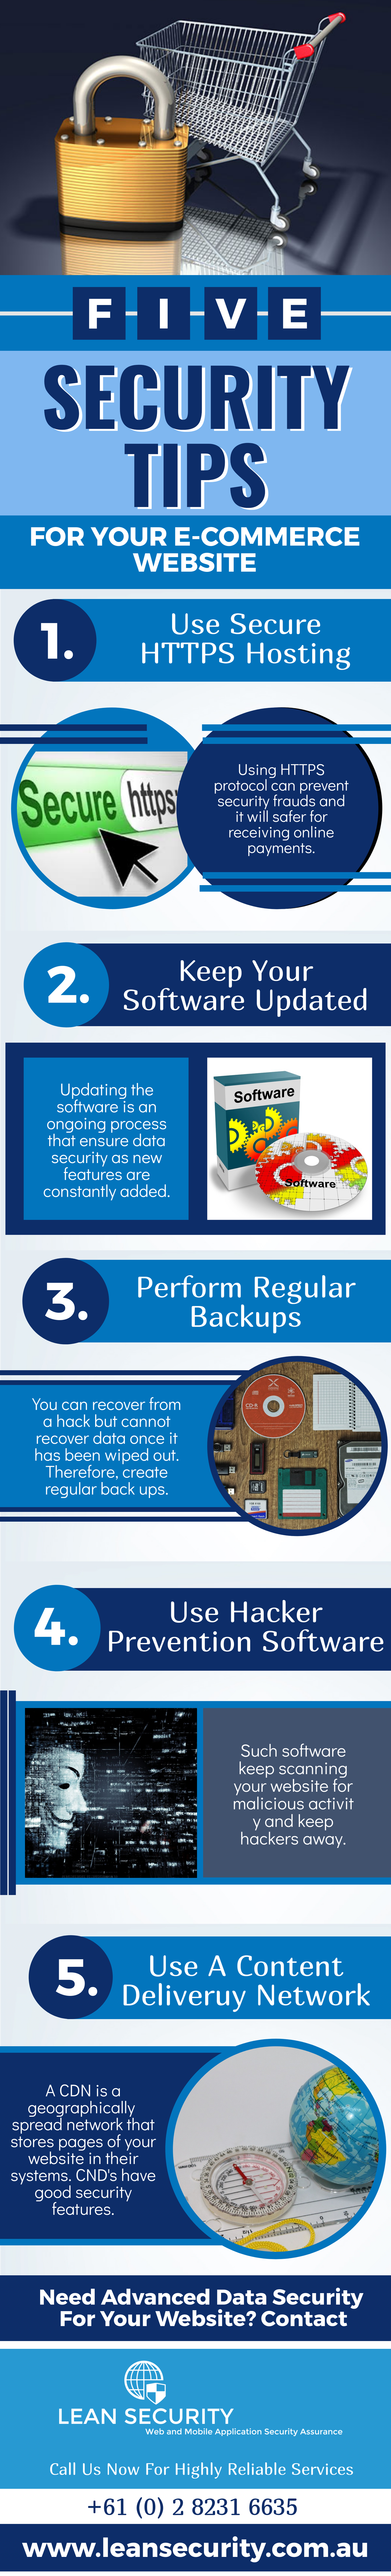 Five Security Tips For Your E-Commerce Website.png